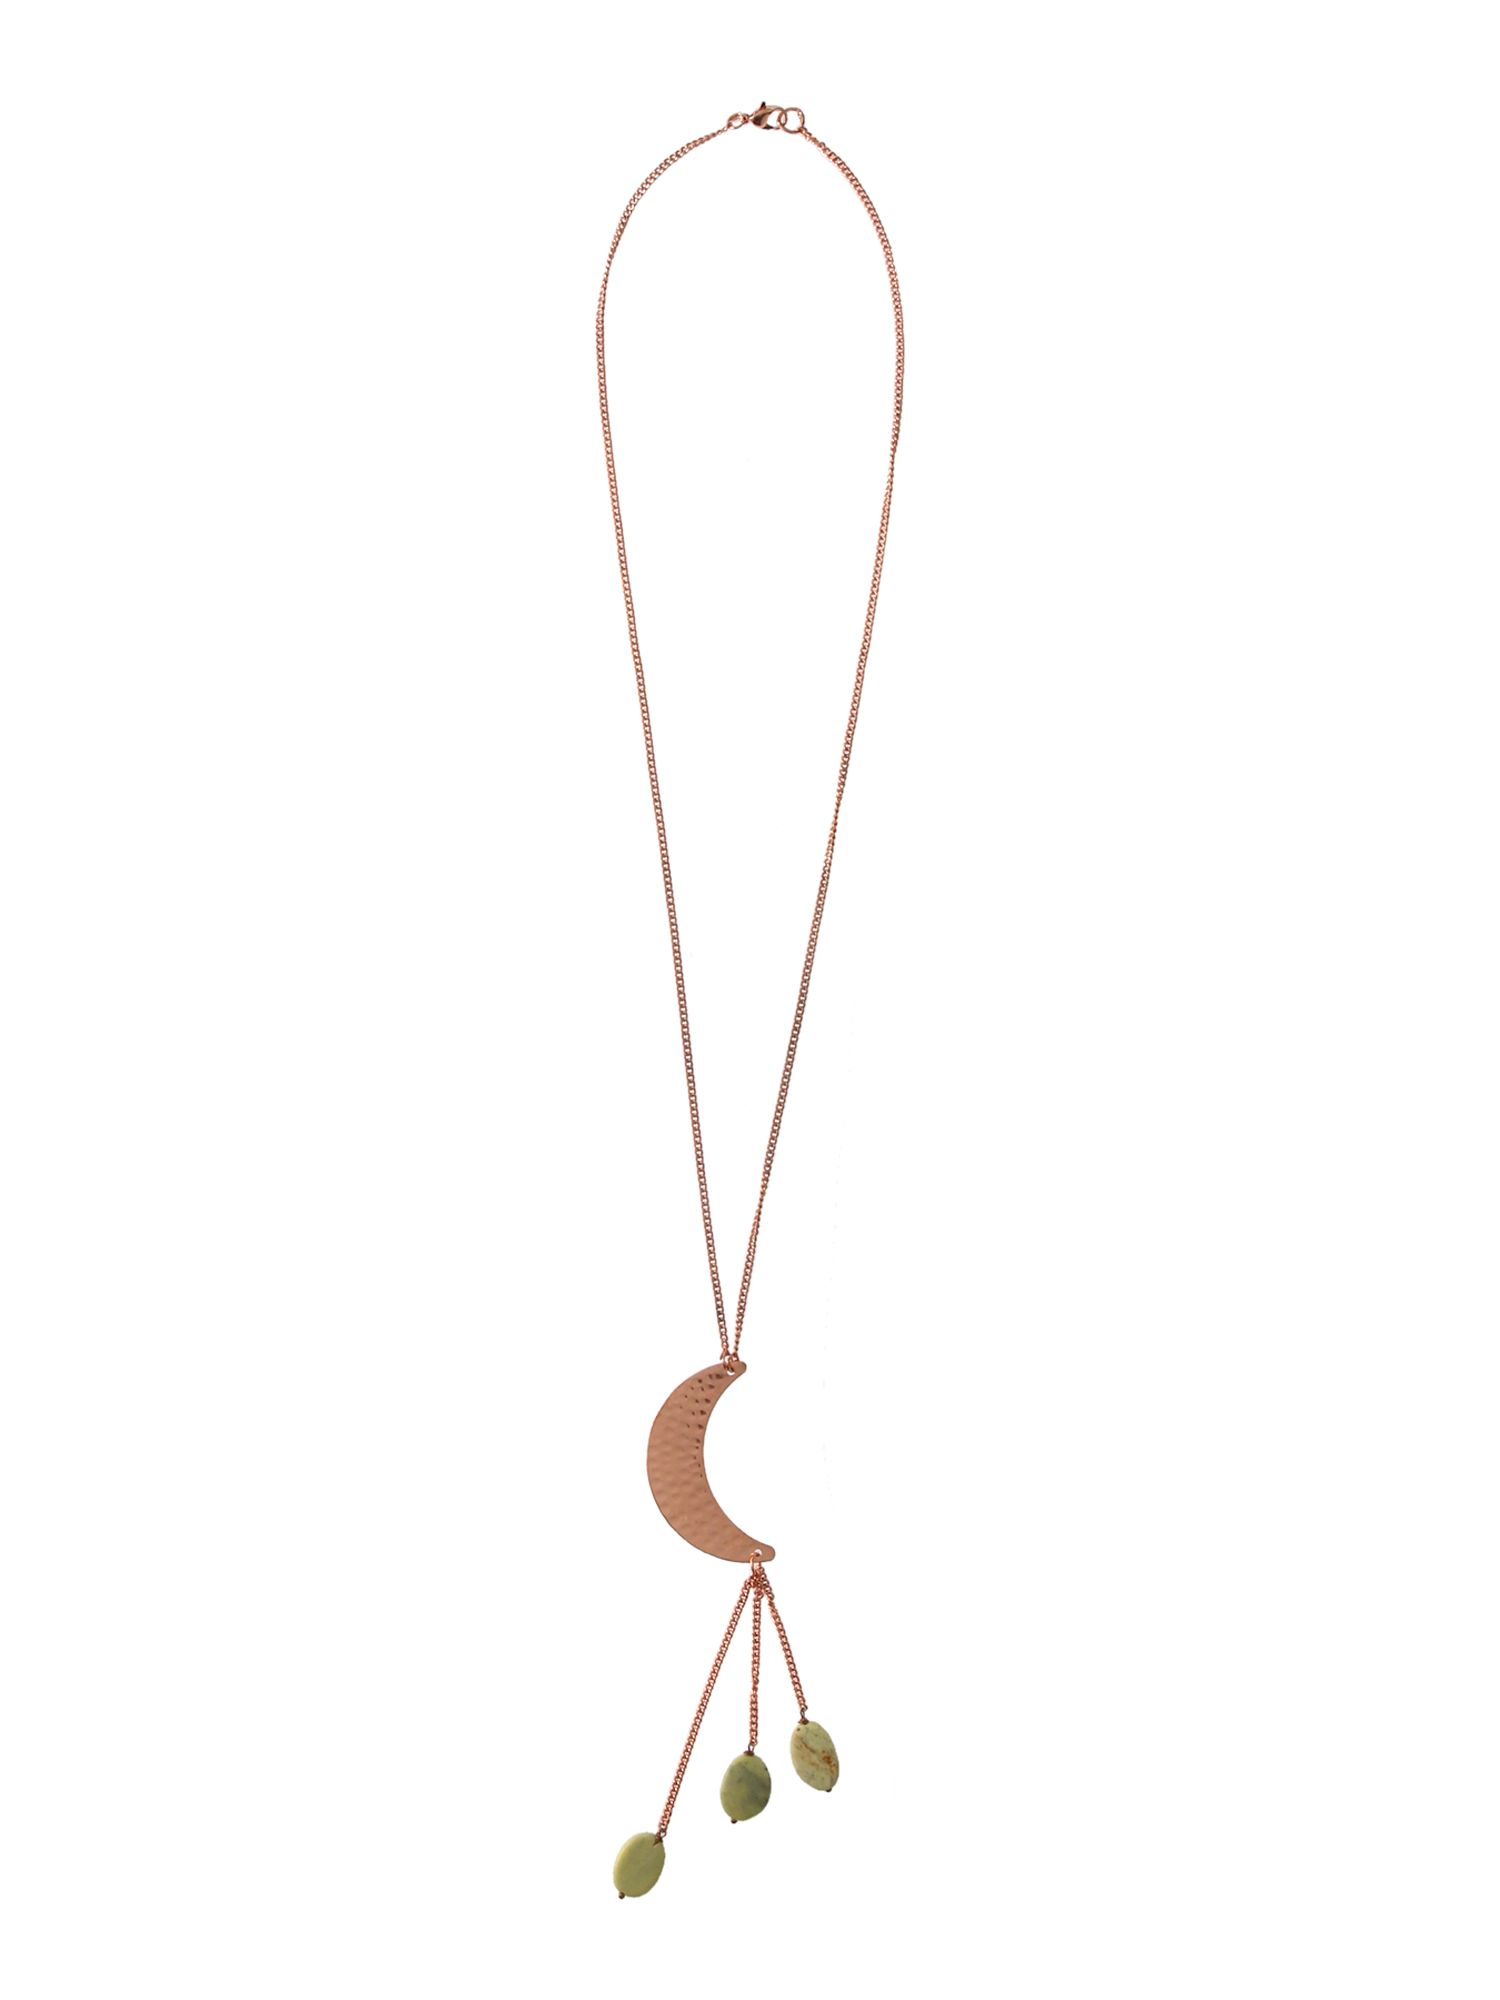 maison de nimes moon crecent necklace